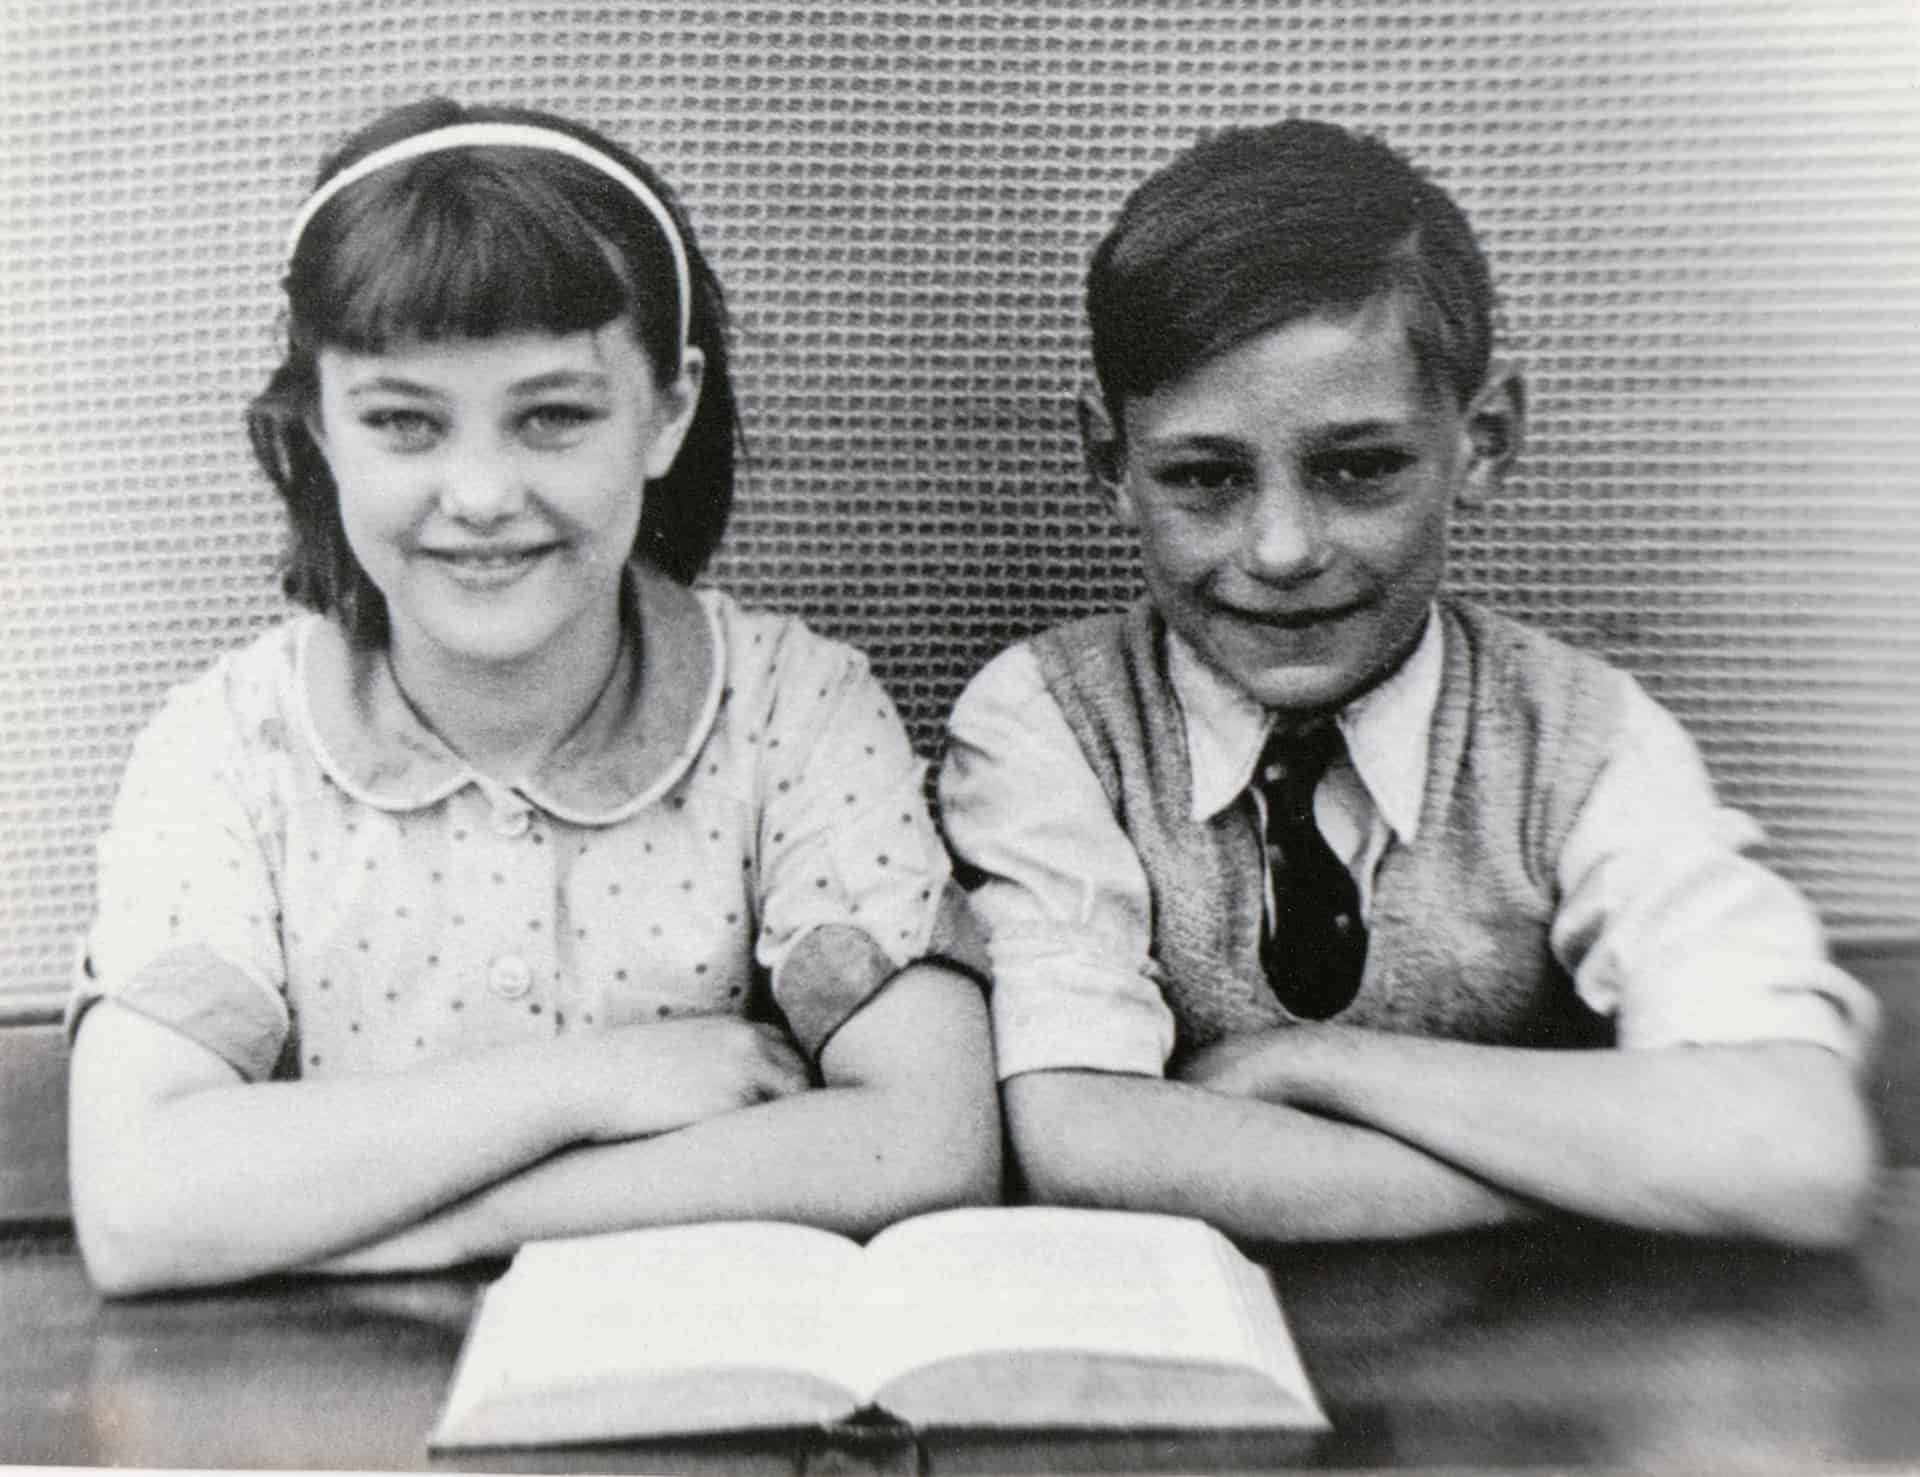 This is a school photo of my dad Peter Offley and his sister Margaret. It was at Rounds Green School.